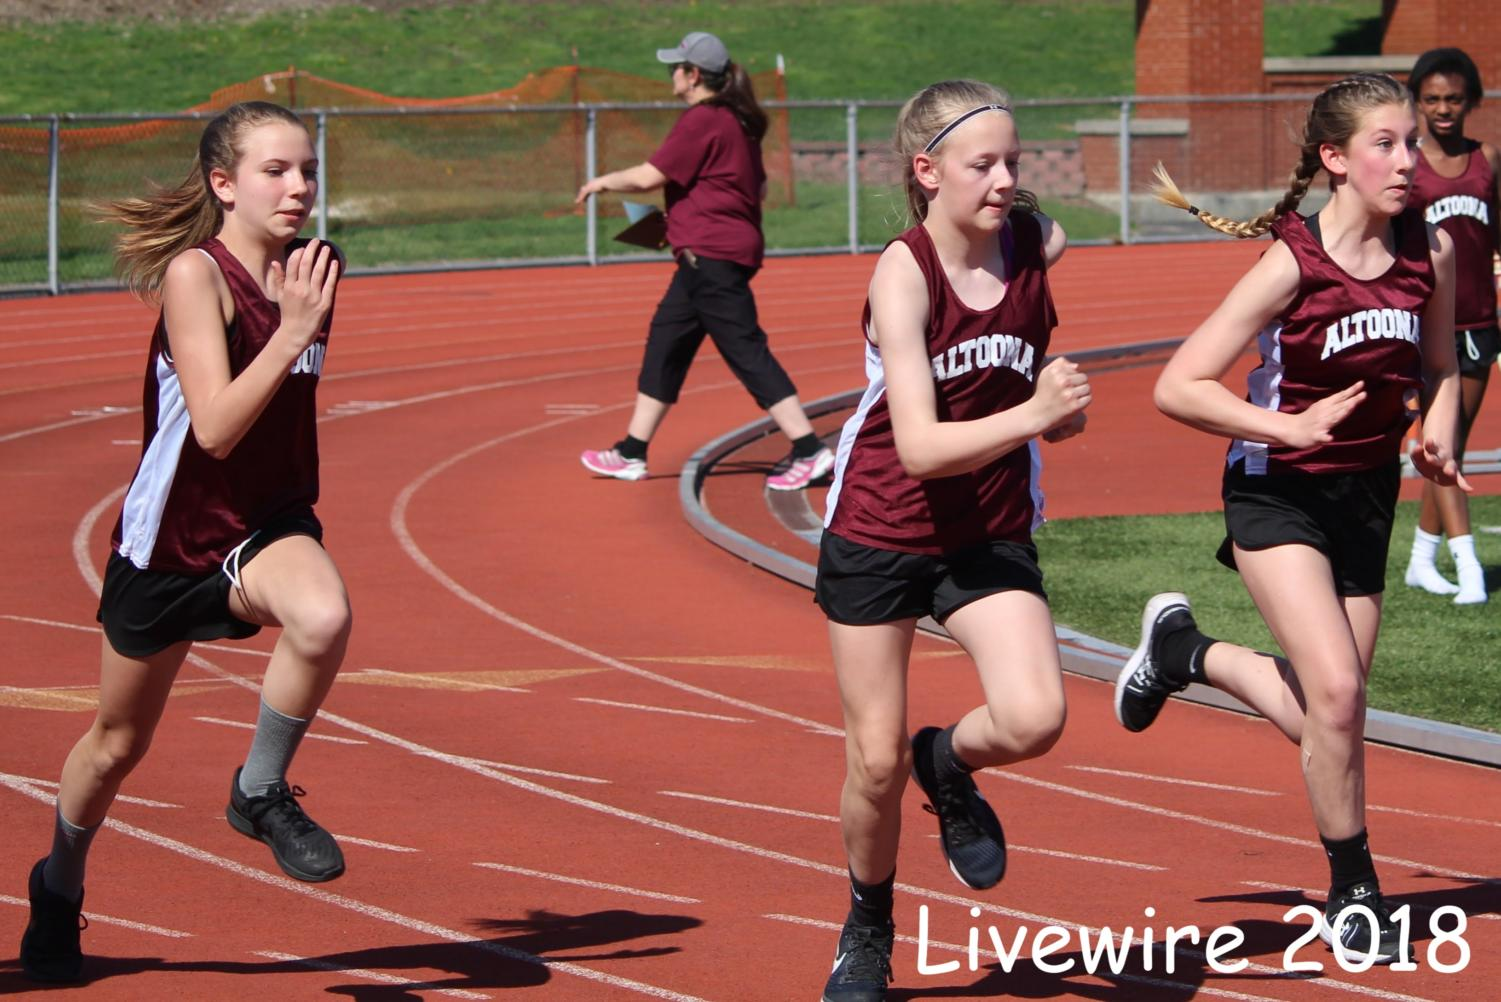 Ready%21+Three+more+sprinters+run+in+the+100+meter+dash.+Altoona+won+the+100.+